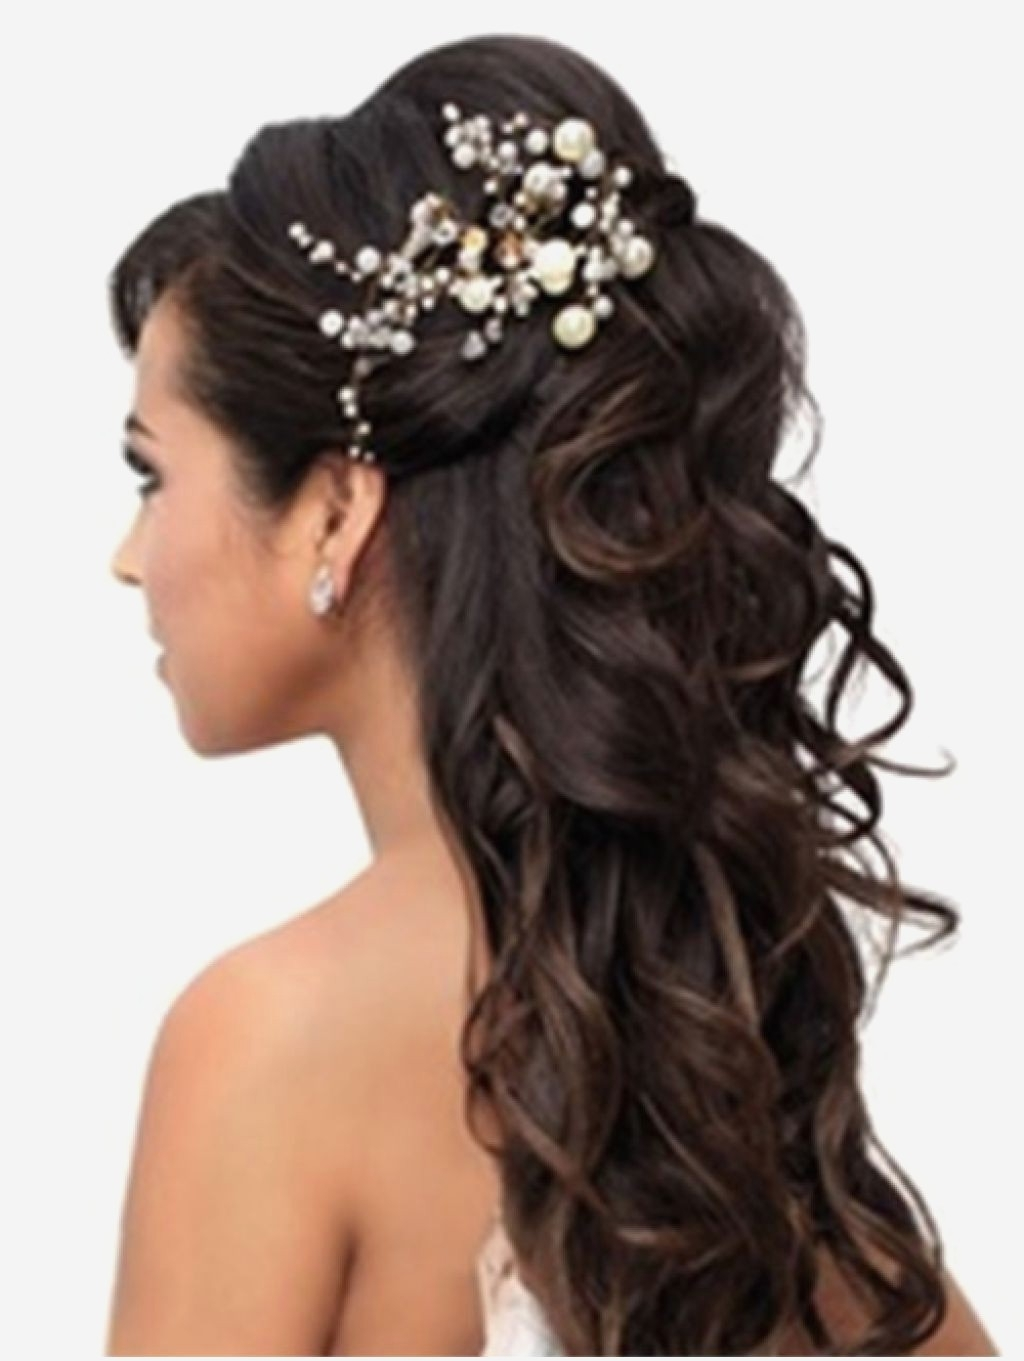 Wedding Hairstyles : Summer Wedding Hairstyles For Long Hair To Make For Well Liked Summer Wedding Hairstyles For Long Hair (View 13 of 15)